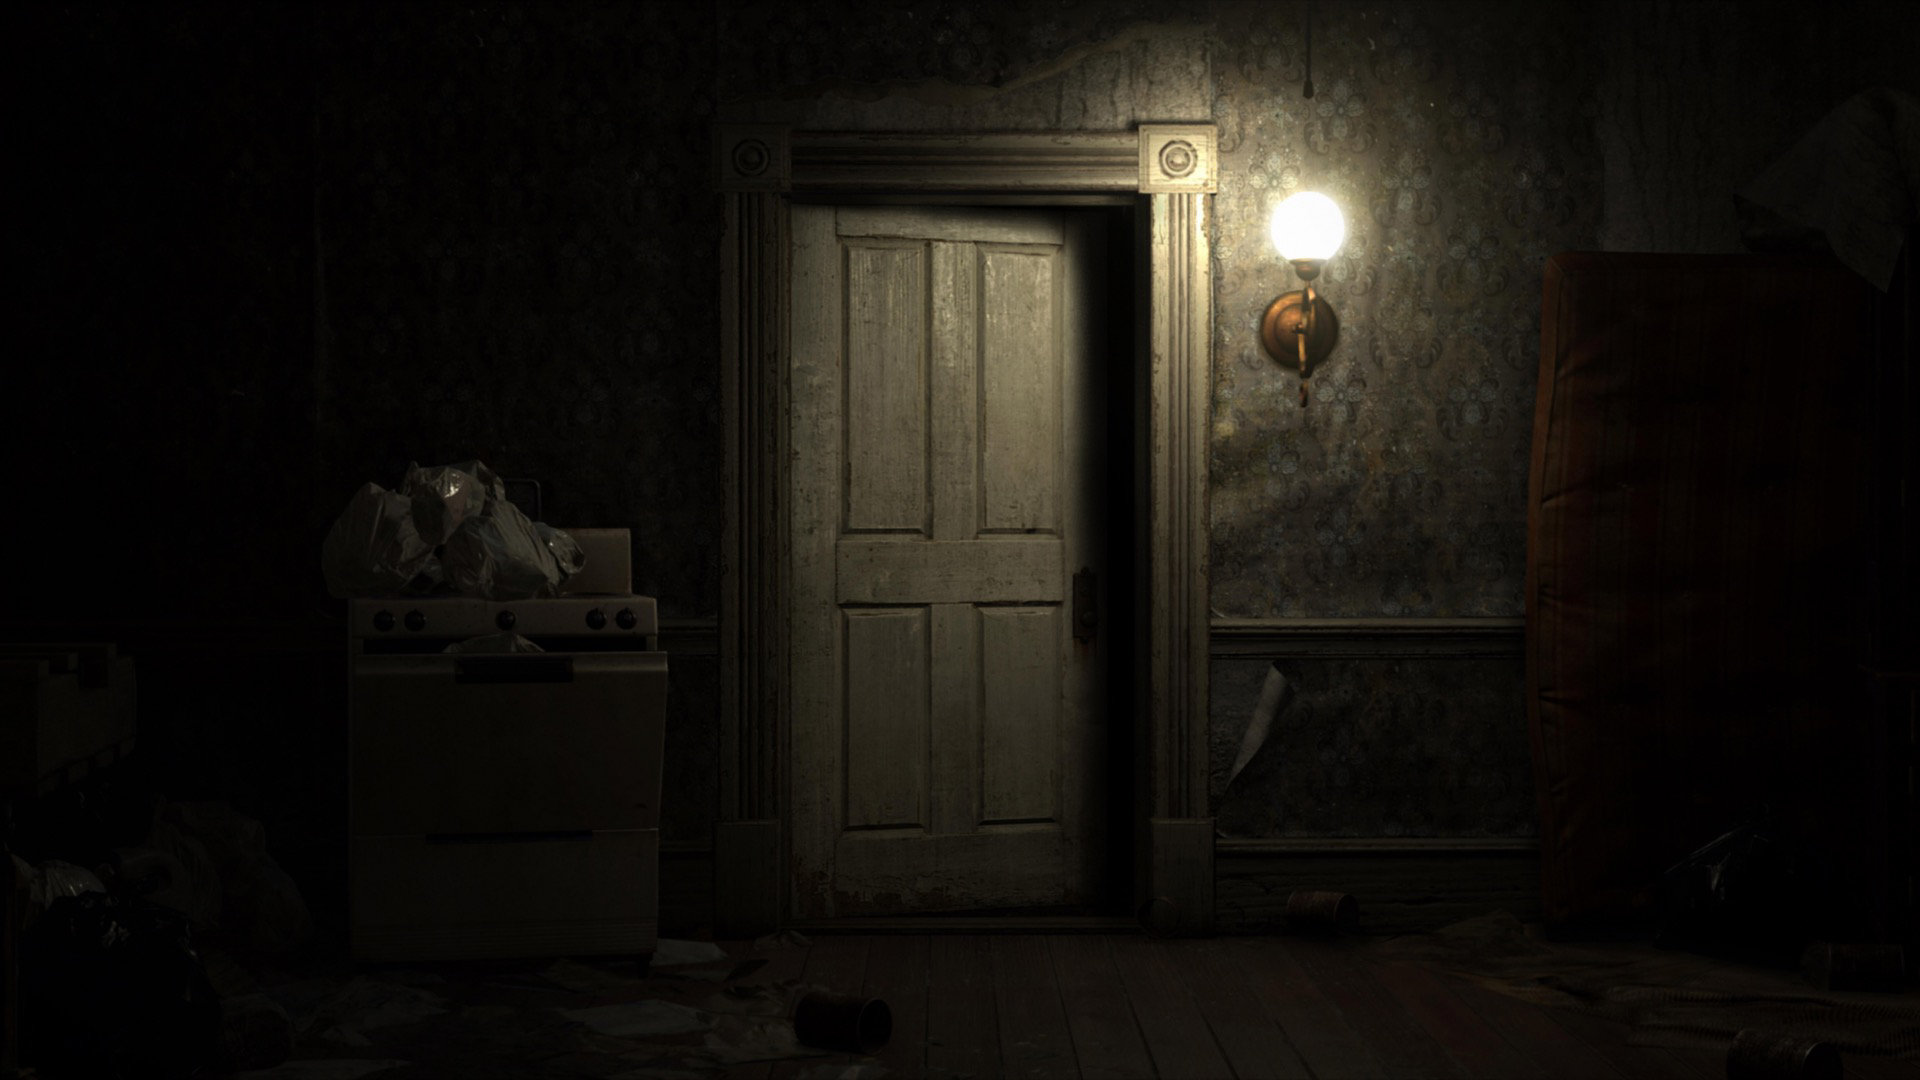 Resident Evil 7: Barricaded Rooms Accessed In Demo Through Hacking